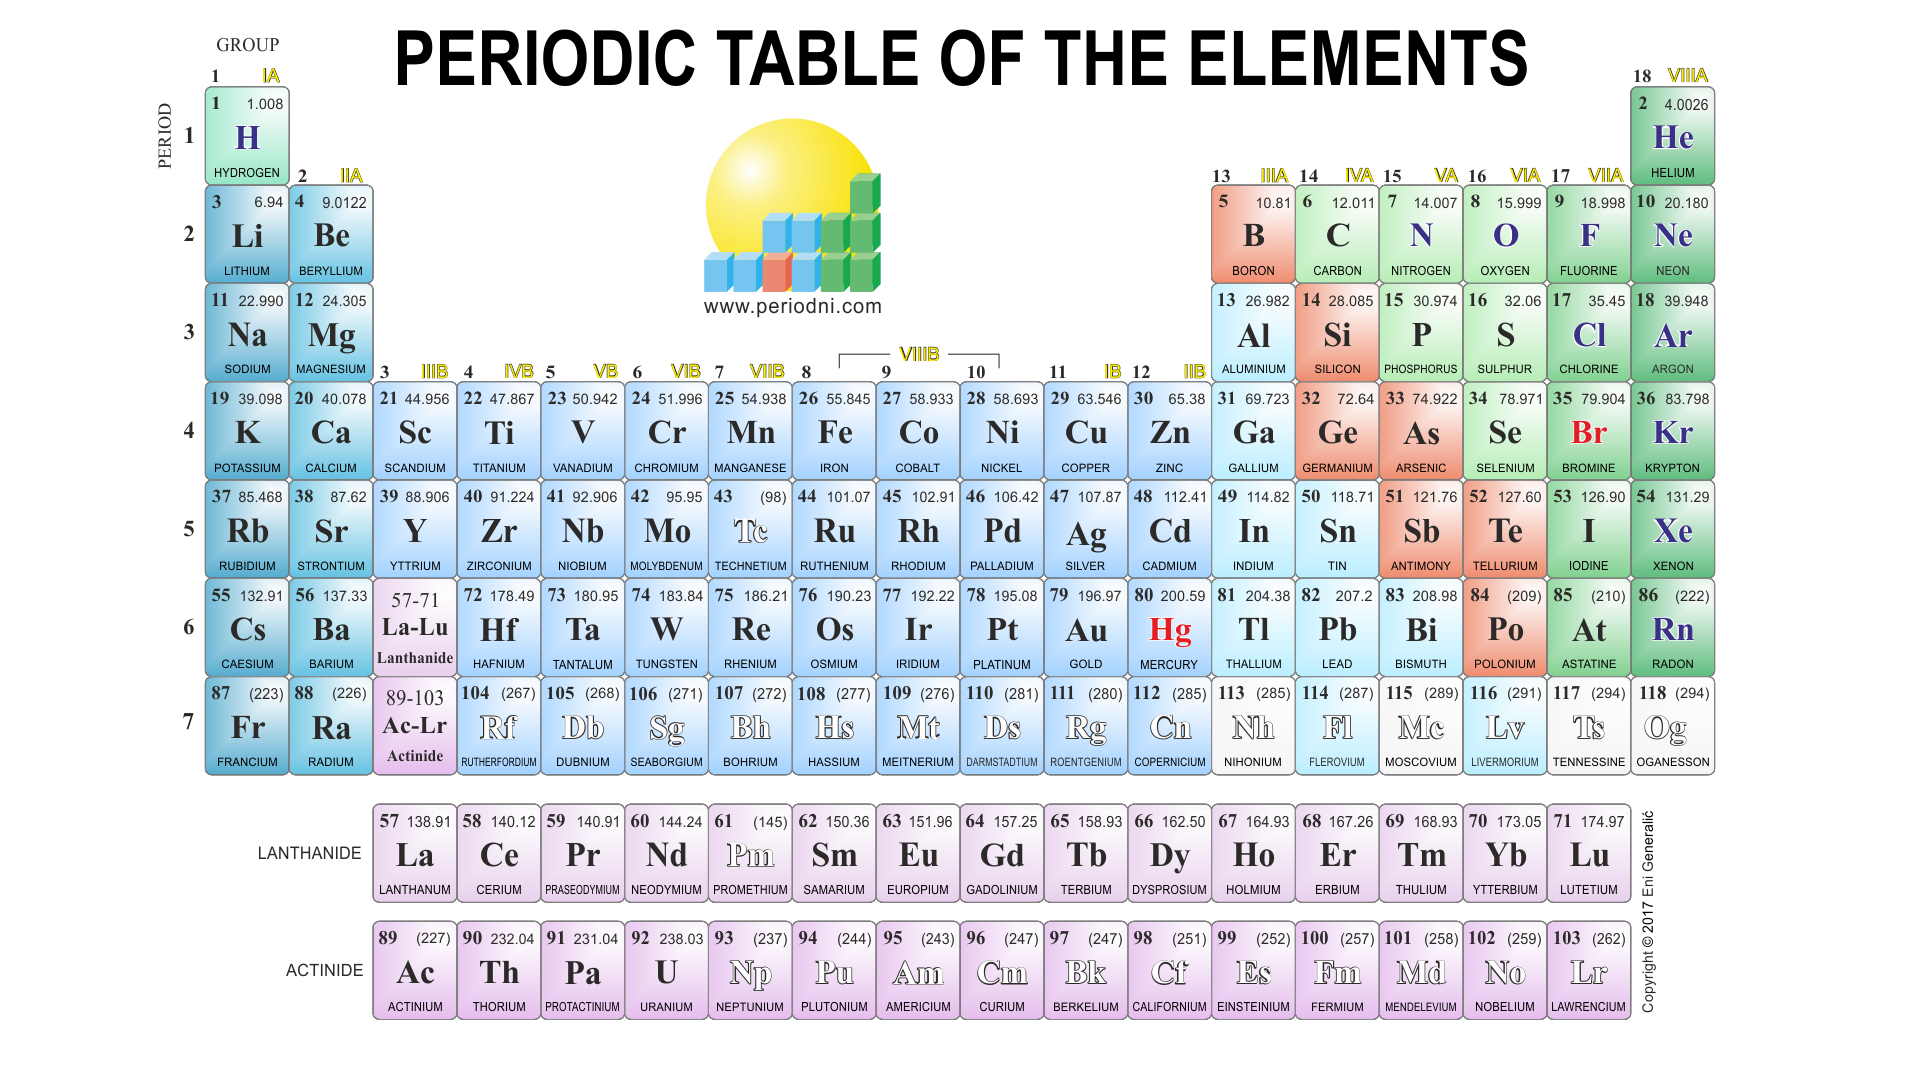 Direct download link: https://www.periodni.com/gallery/periodic_table-hd-1920x1080-light_background.png